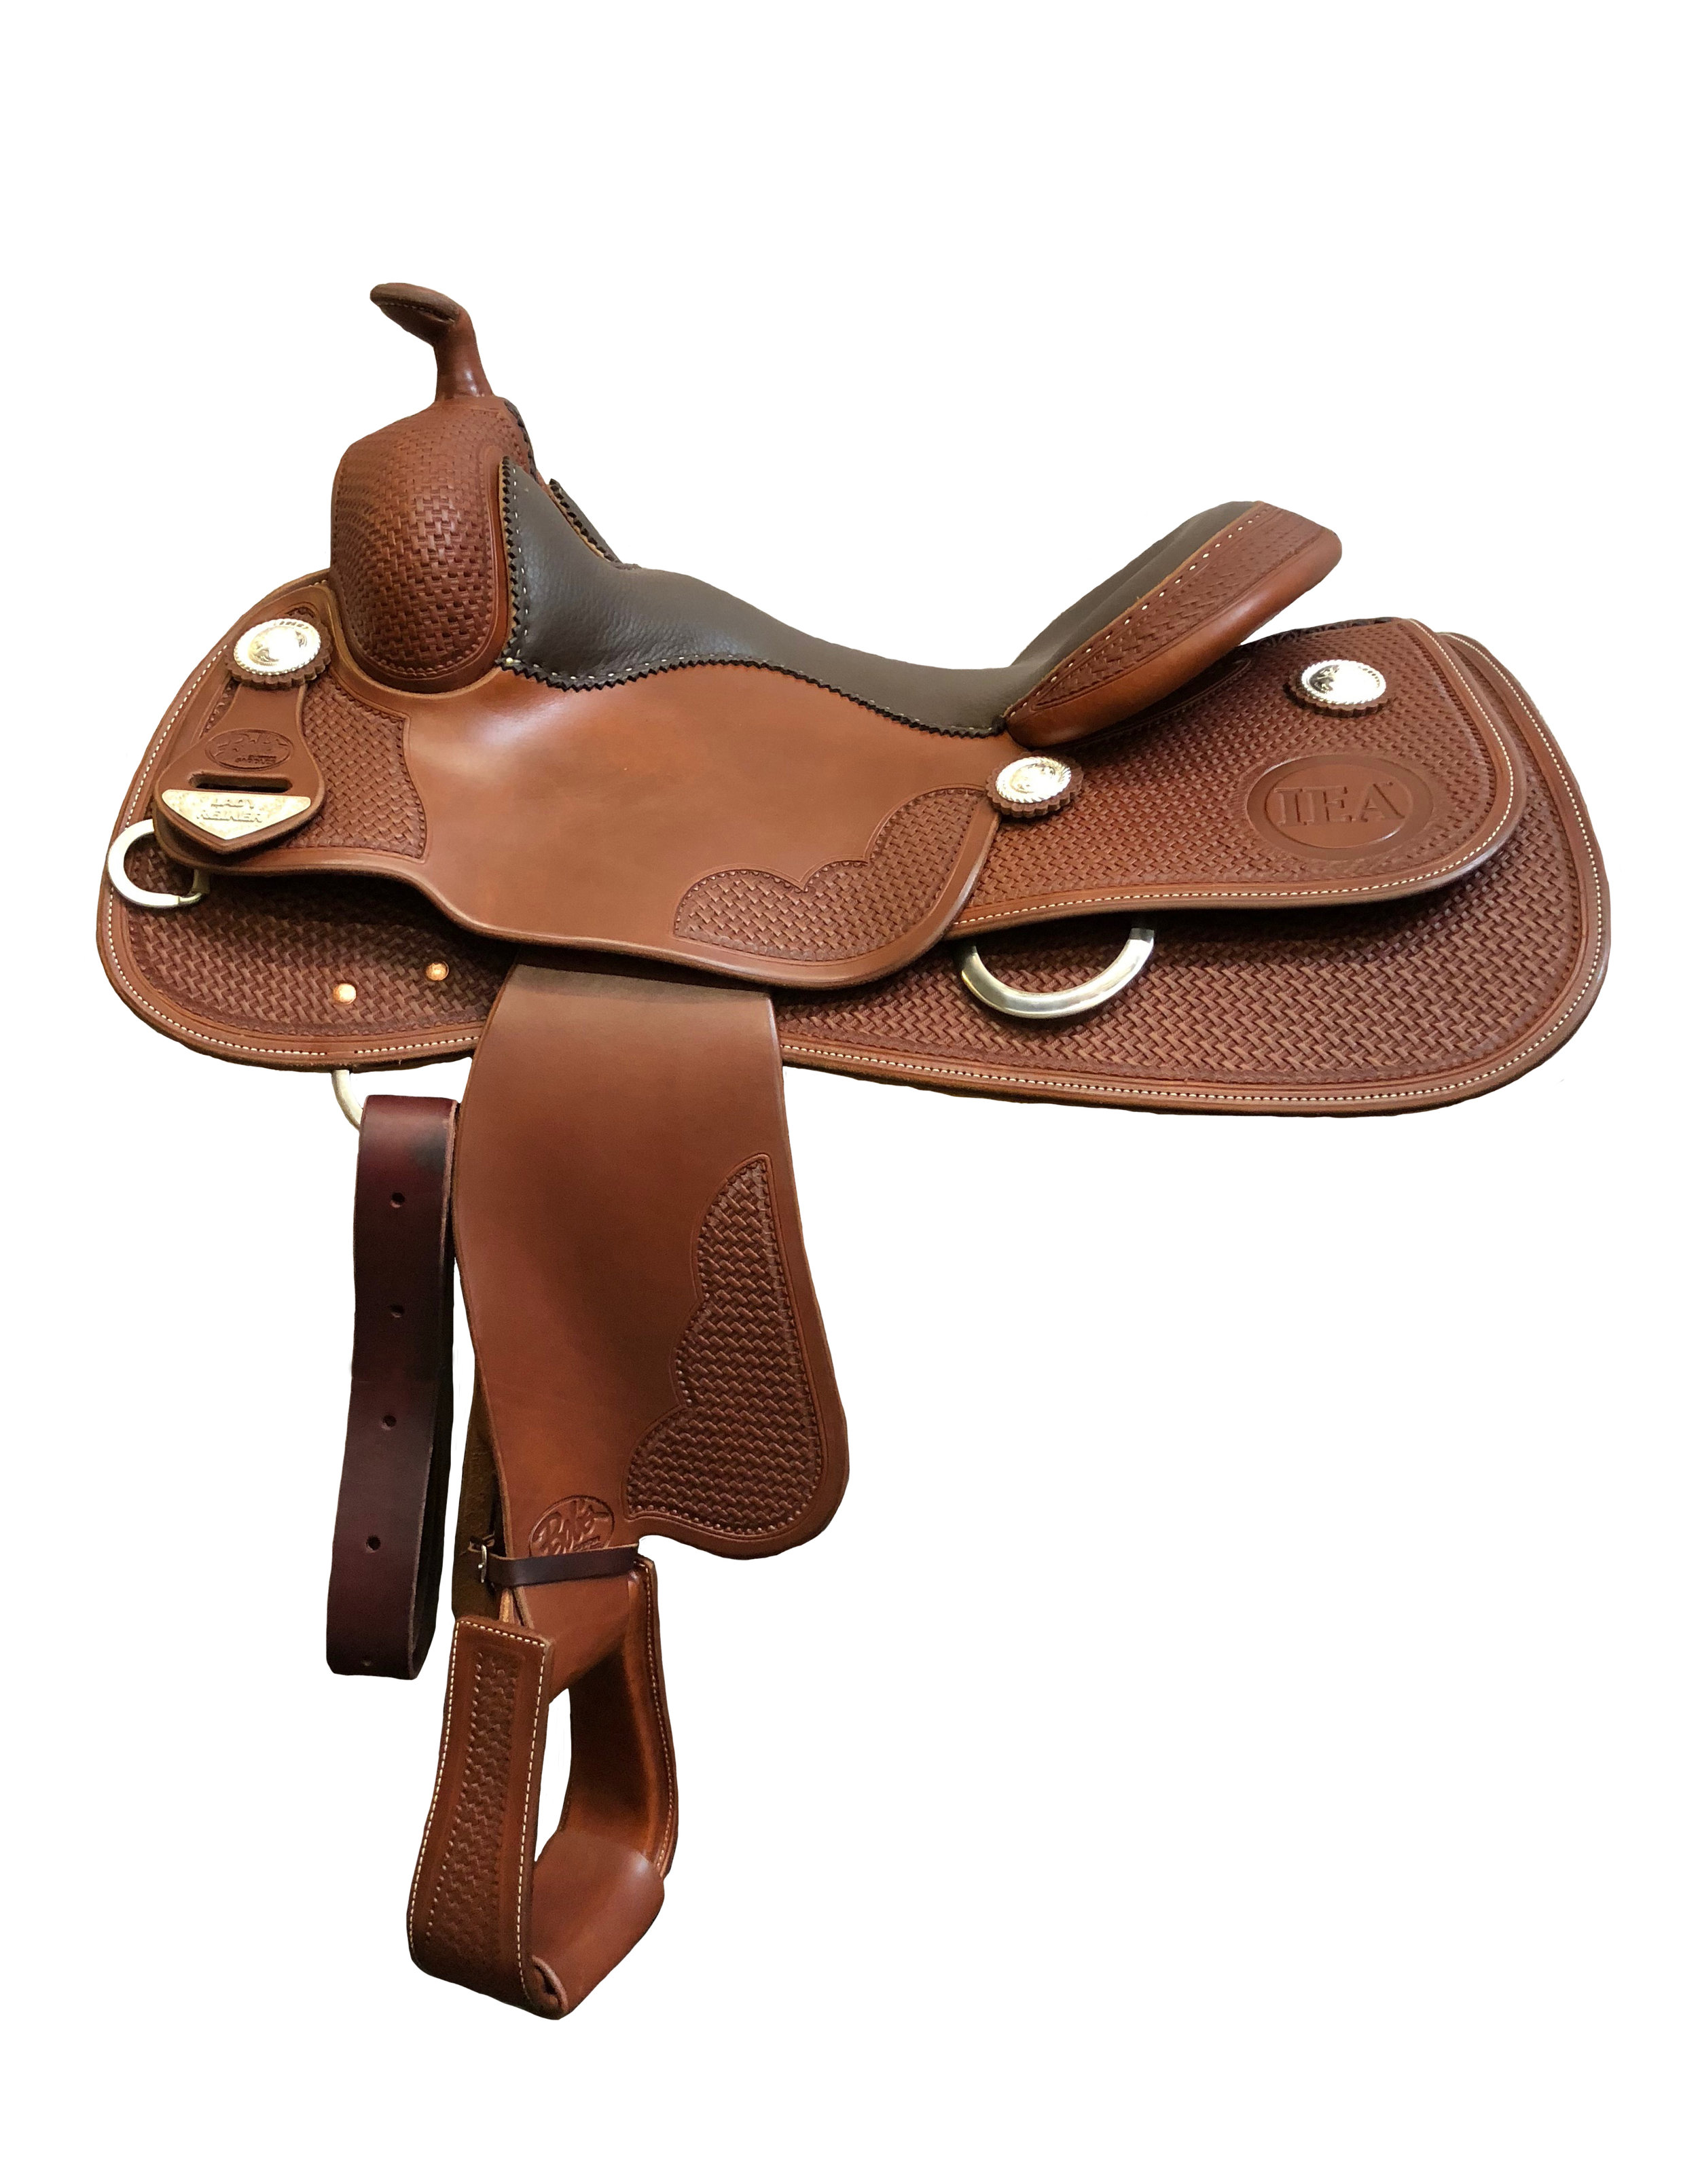 B18-443 IEA Saddle.jpg